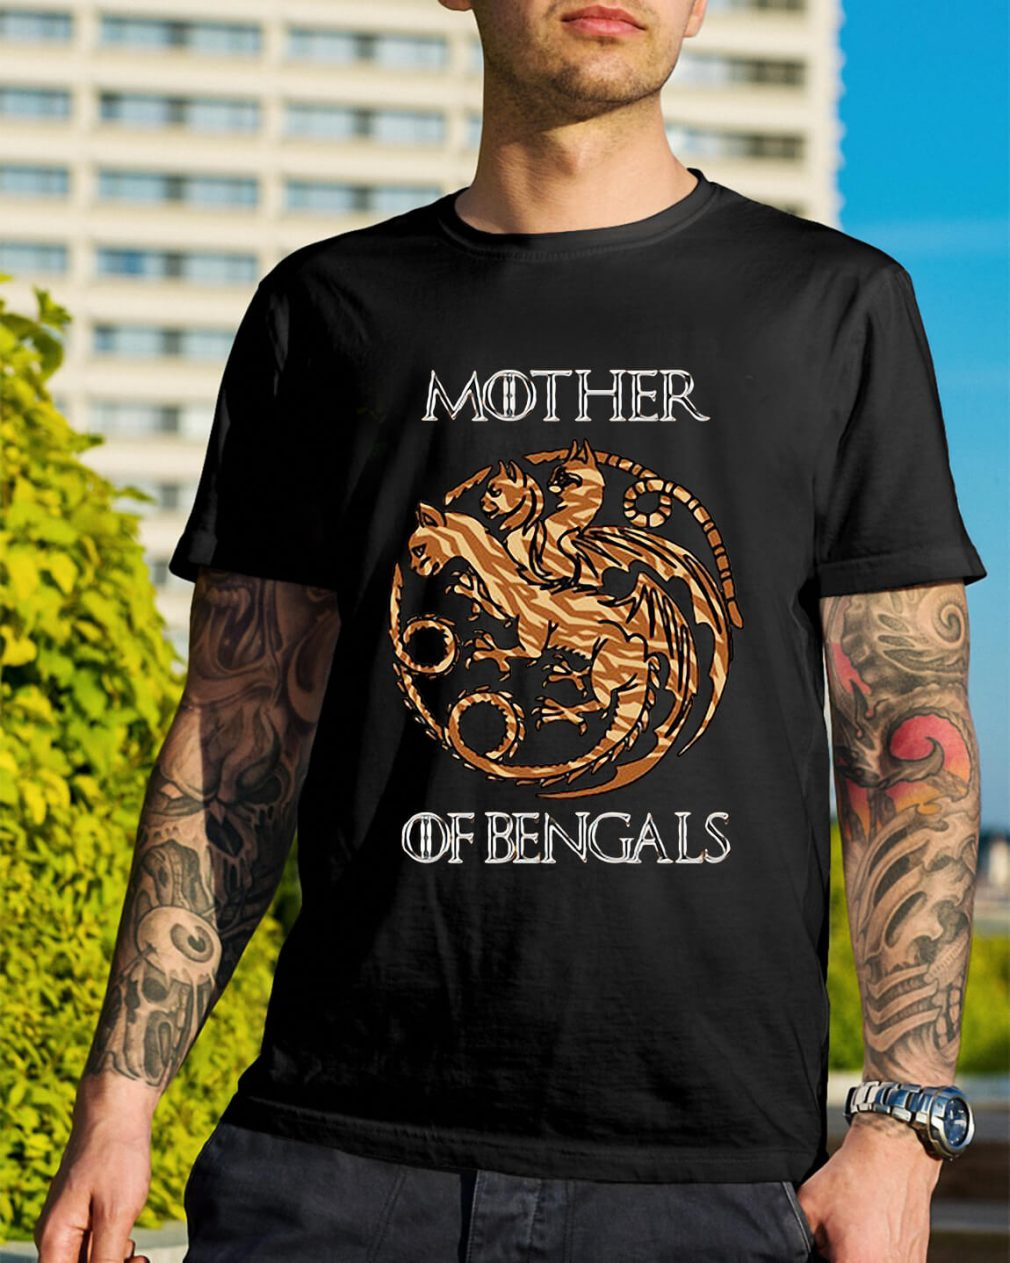 Game of Thrones mother of Bengals shirt